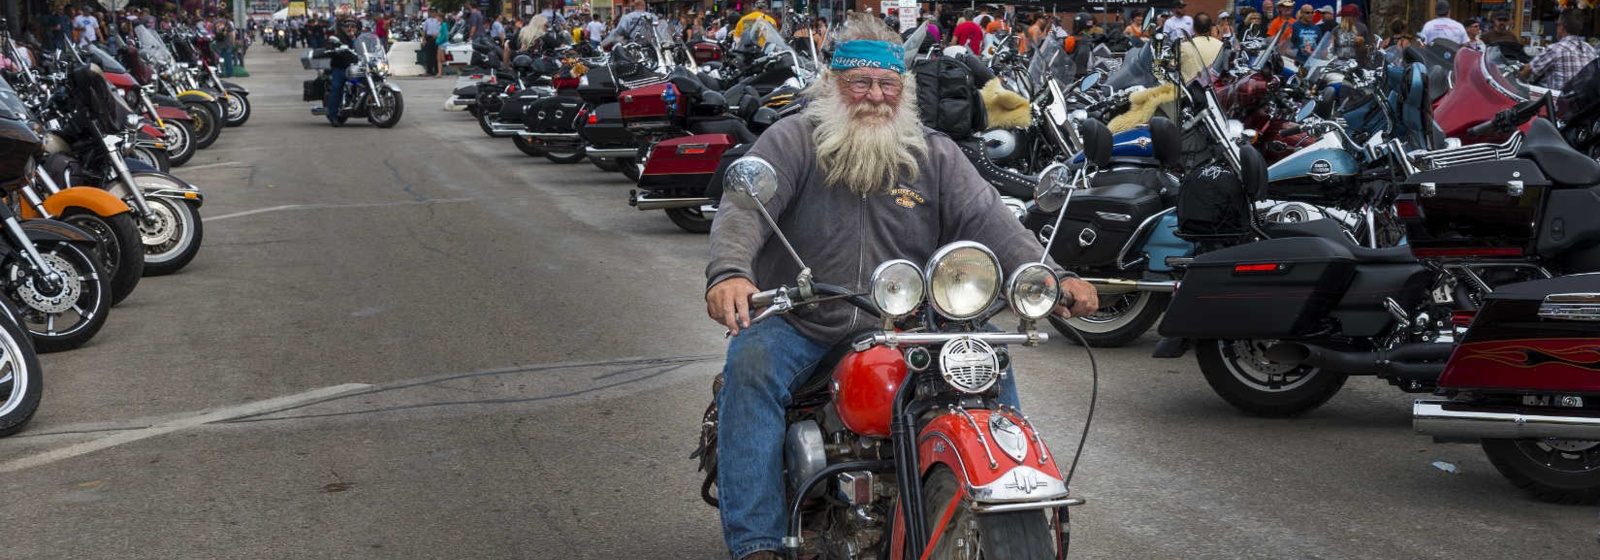 CNN Claims Sturgis a COVID-19 'Super Spreader' Event, with 70 Cases Per 500,000 People